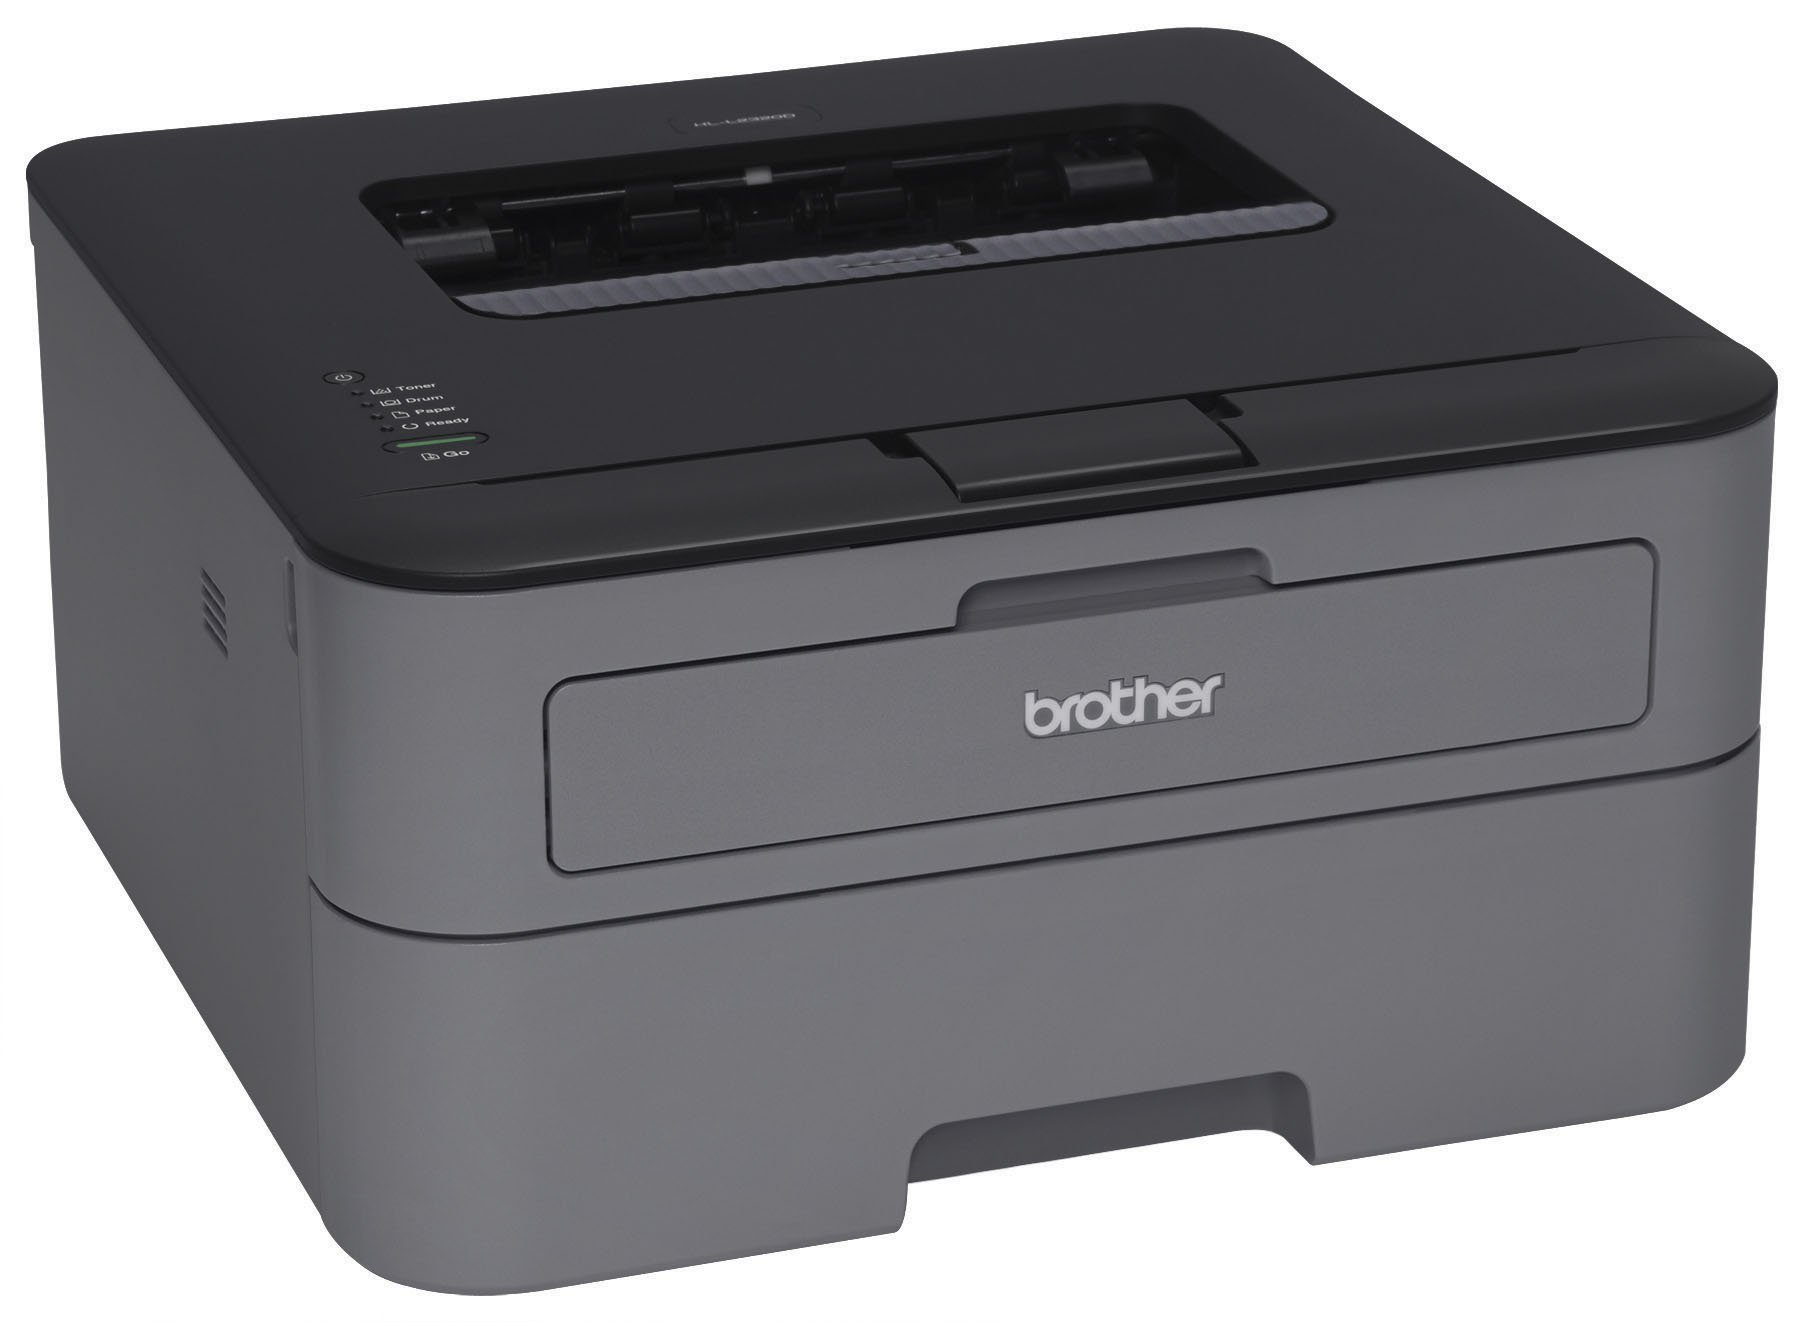 Brother HL-L2300D Monochrome Laser Printer with Duplex Printing by Brother (Image #2)